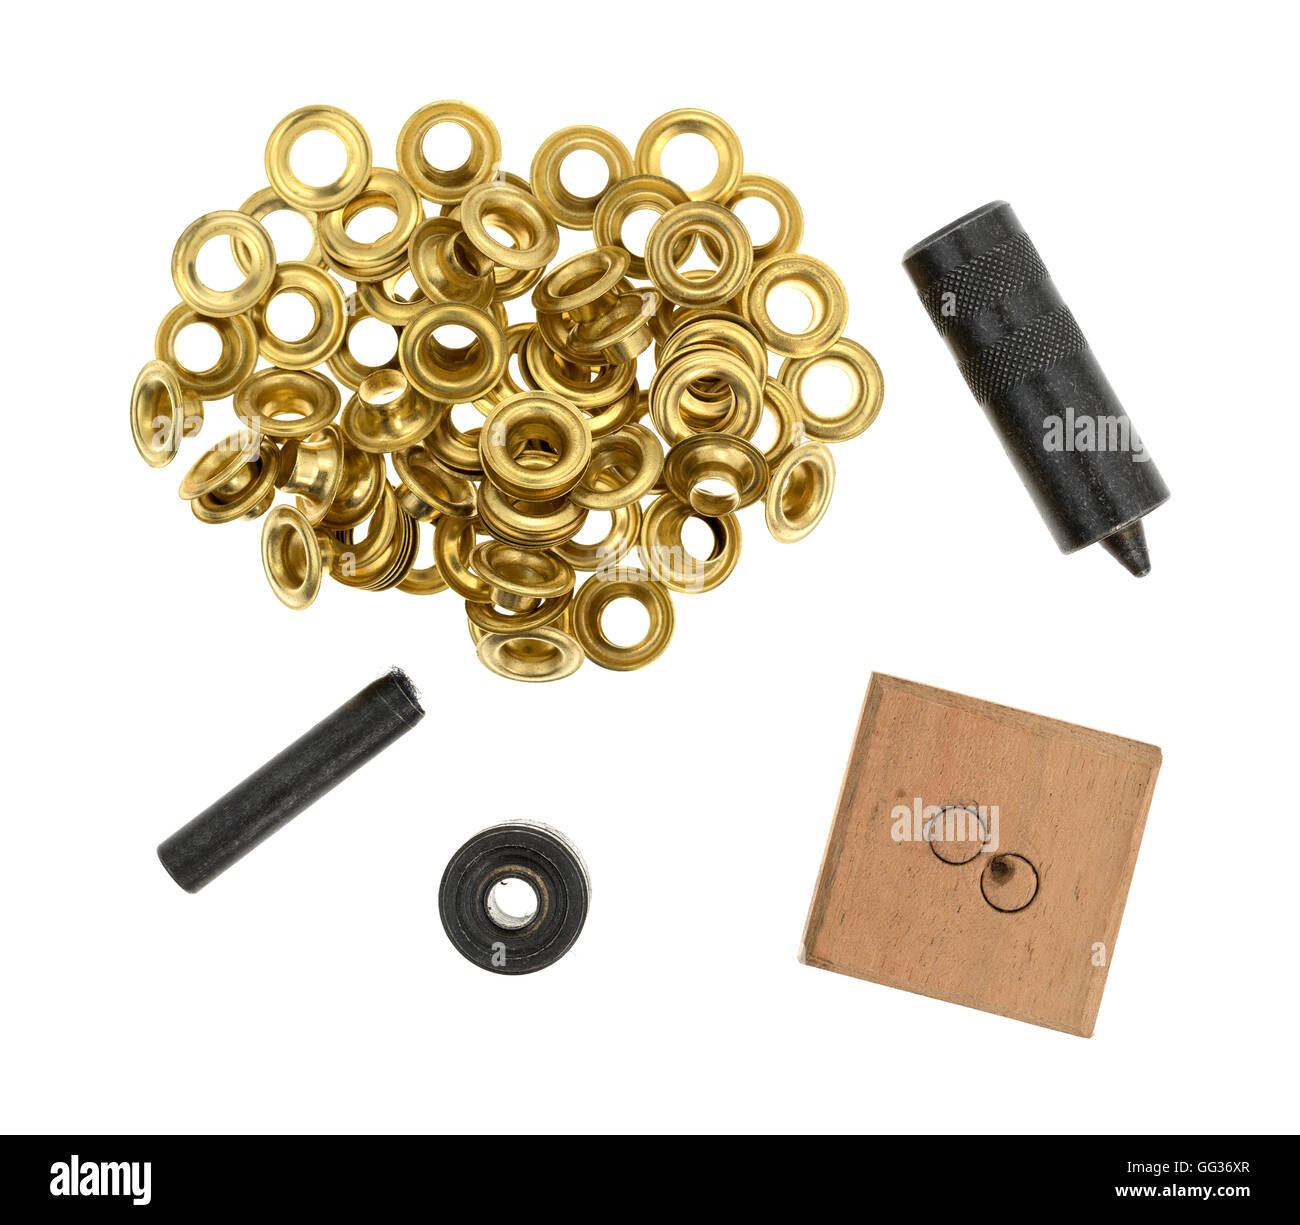 Used grommet kit isolated on a white background. - Stock Image